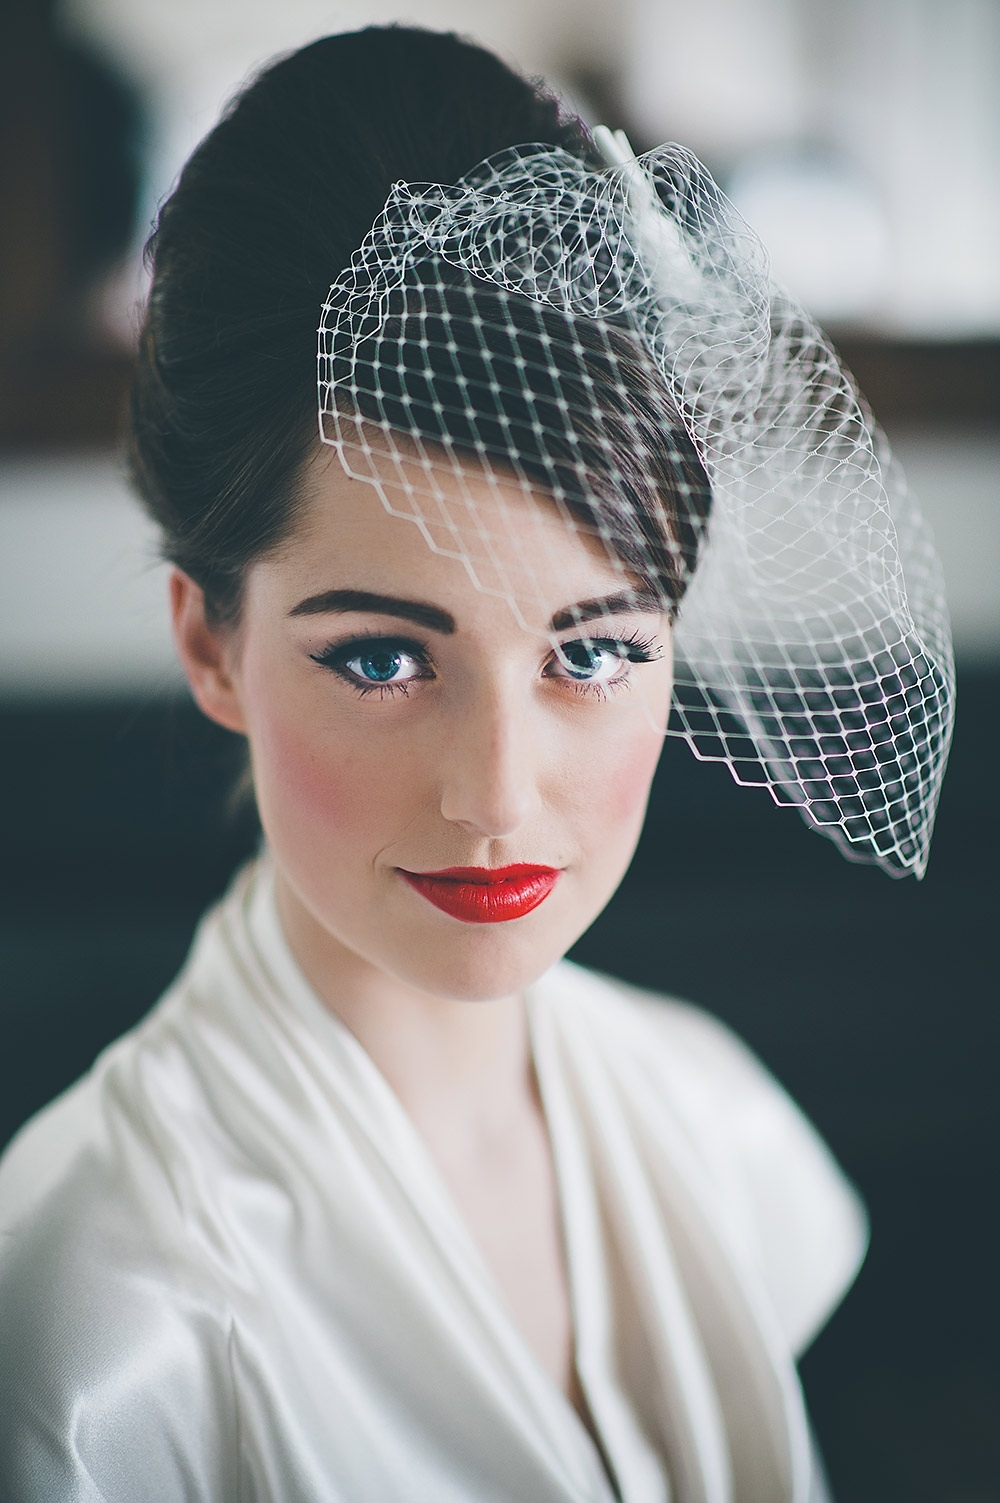 25 Classic And Beautiful Vintage Wedding Hairstyles – Haircuts Pertaining To 2017 Wedding Hairstyles With Glasses (View 6 of 15)